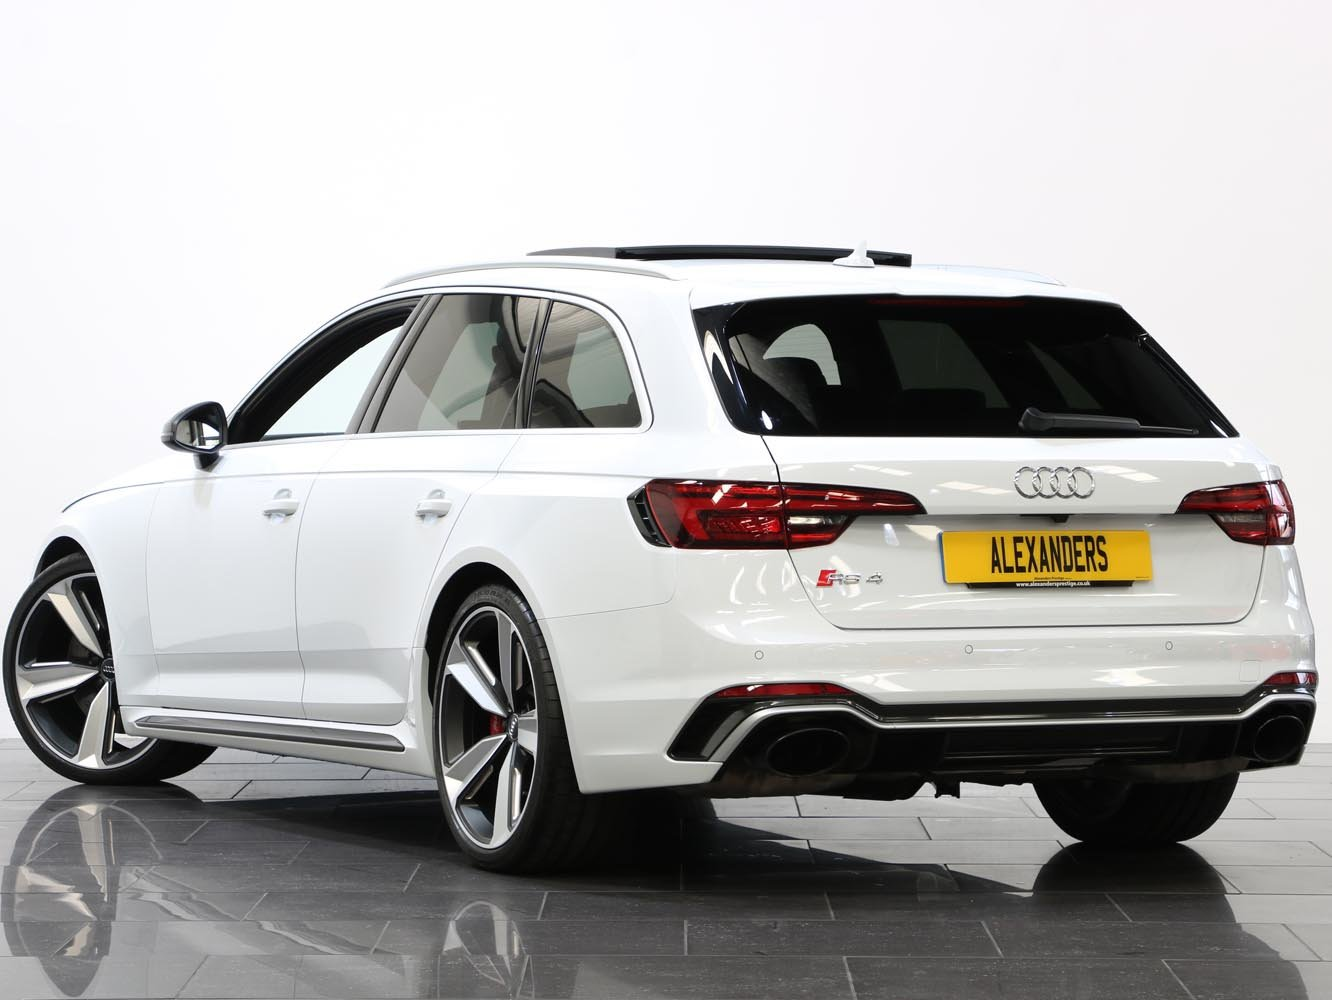 2018 18 68 AUDI RS4 CARBON EDITION 2.9 TFSI QUATTRO TIPTRONIC For Sale (picture 3 of 6)